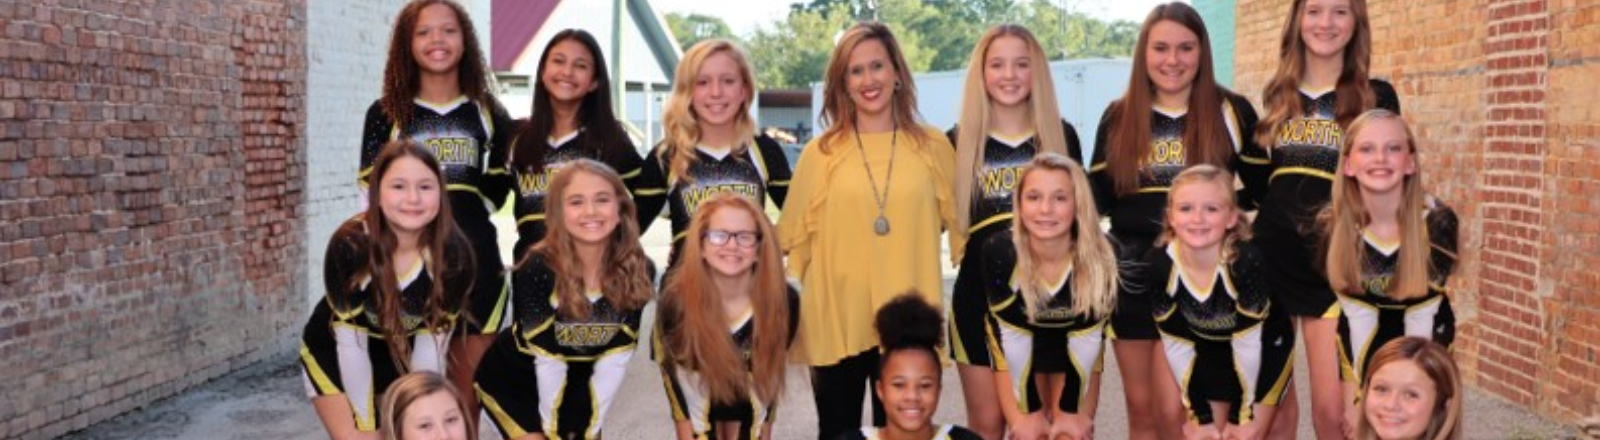 WCMS Competition Cheerleaders